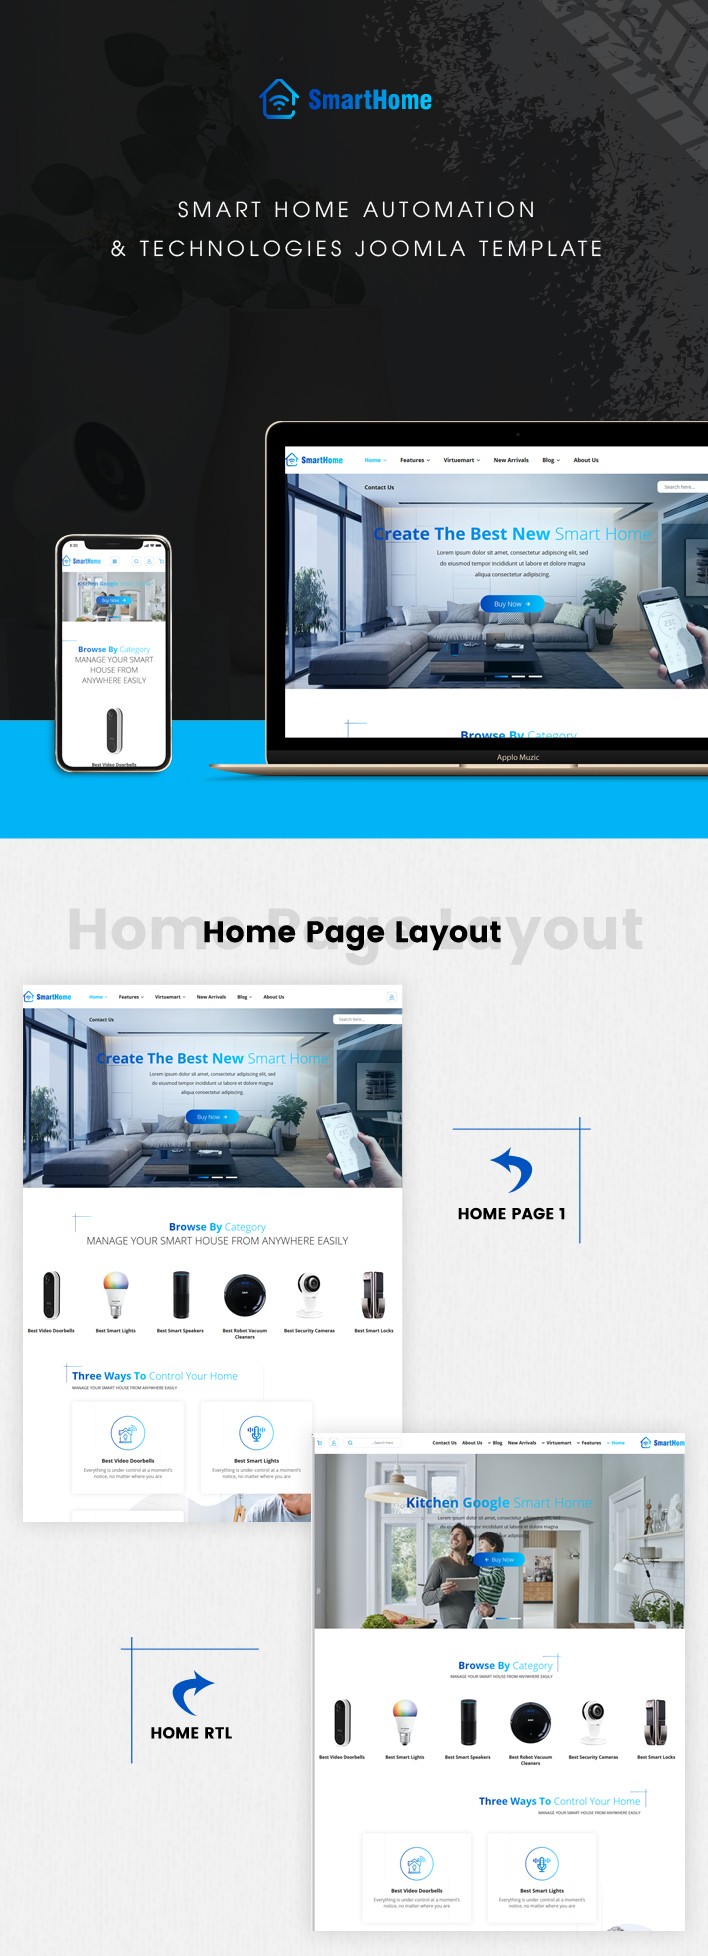 Sj SmartHome - Smart Home Automation & Technologies Joomla Template